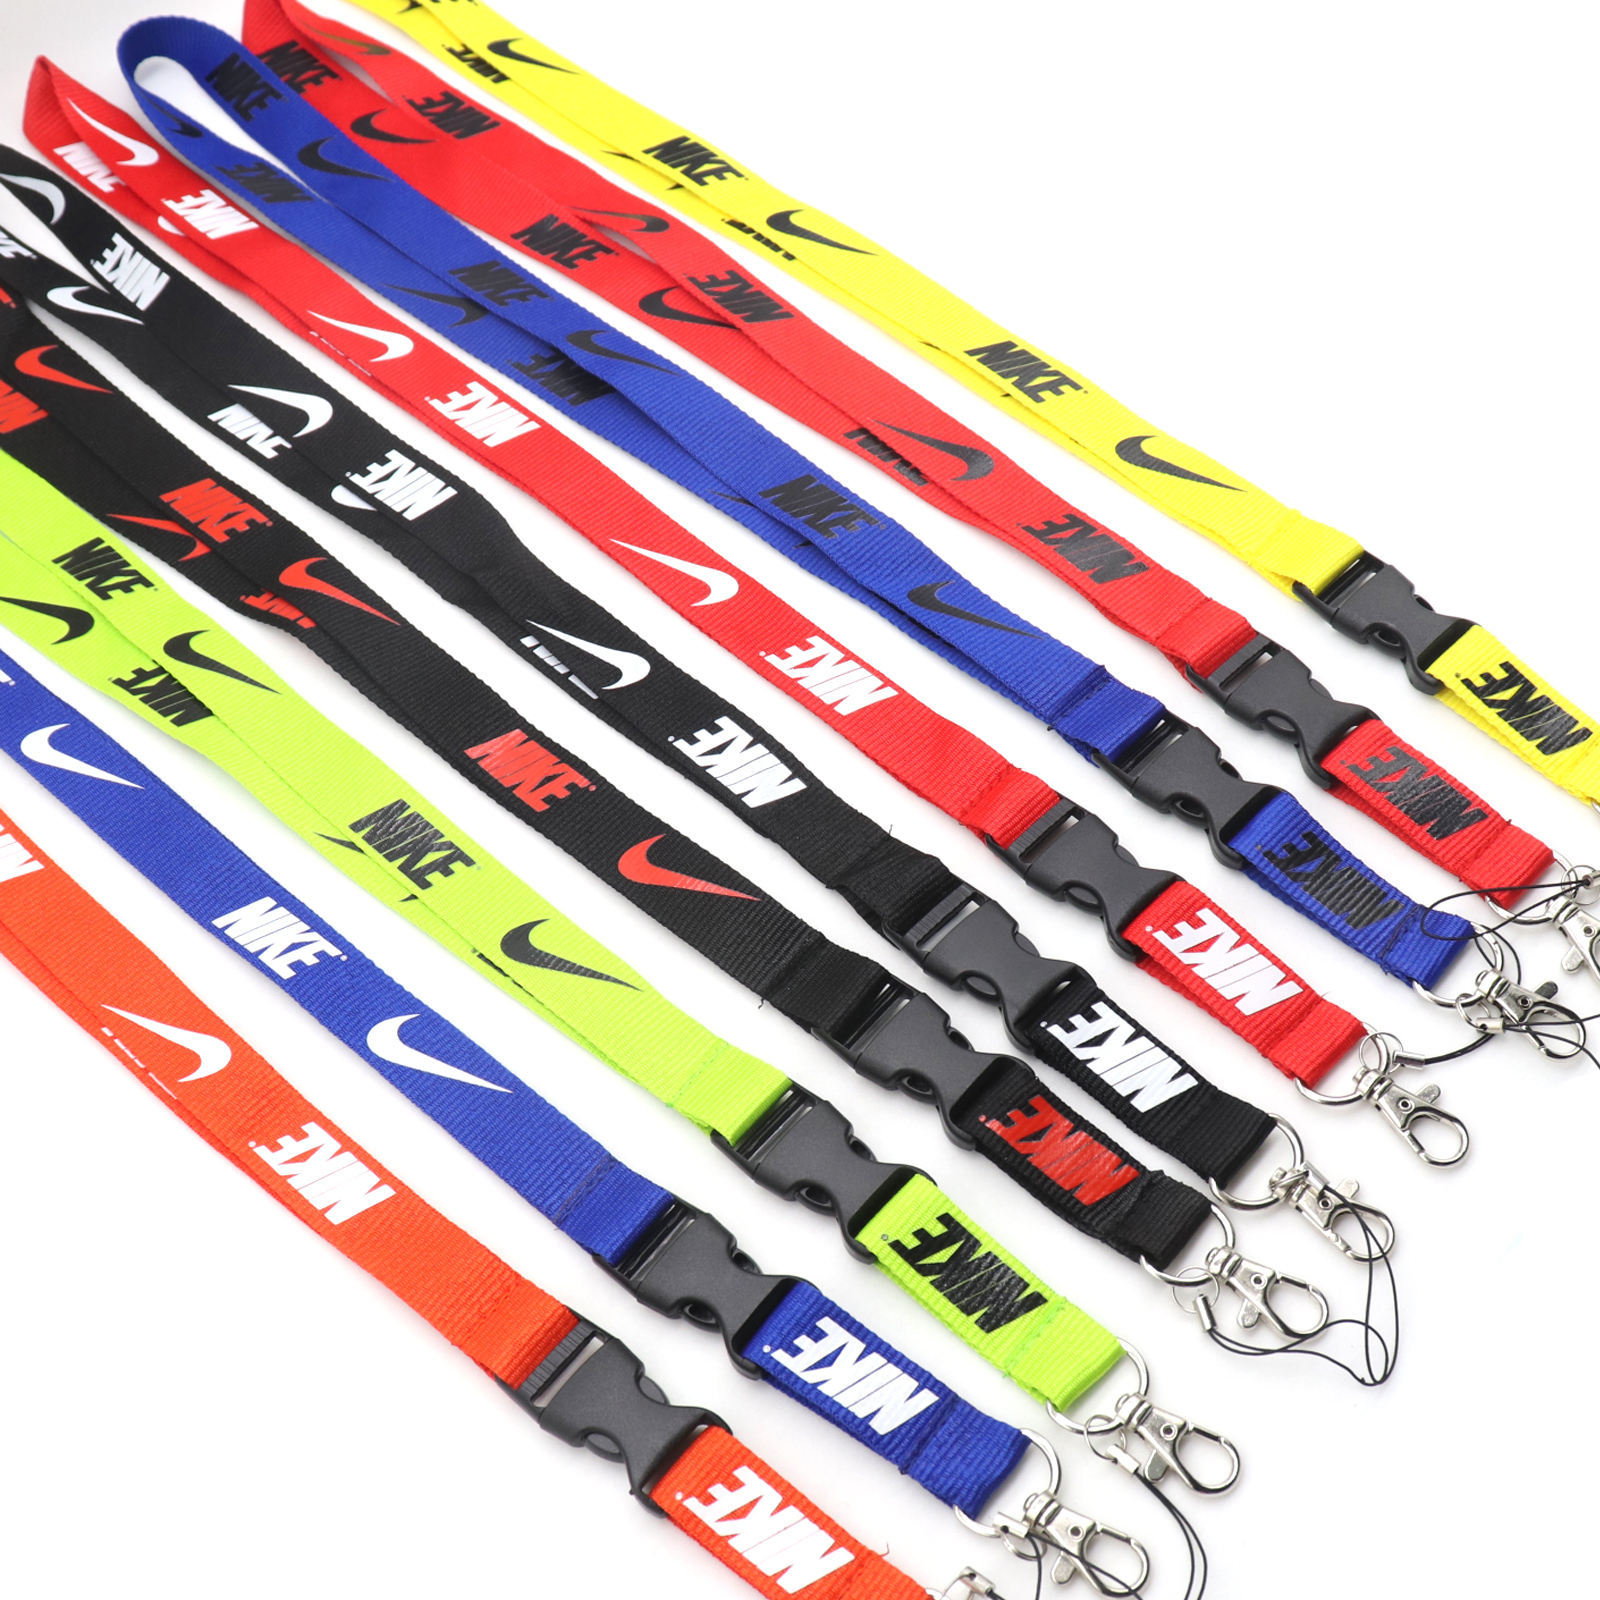 Multi color Keychain Holder Safety Polyester Neck Straps Nike Lanyard for phone,key and ID